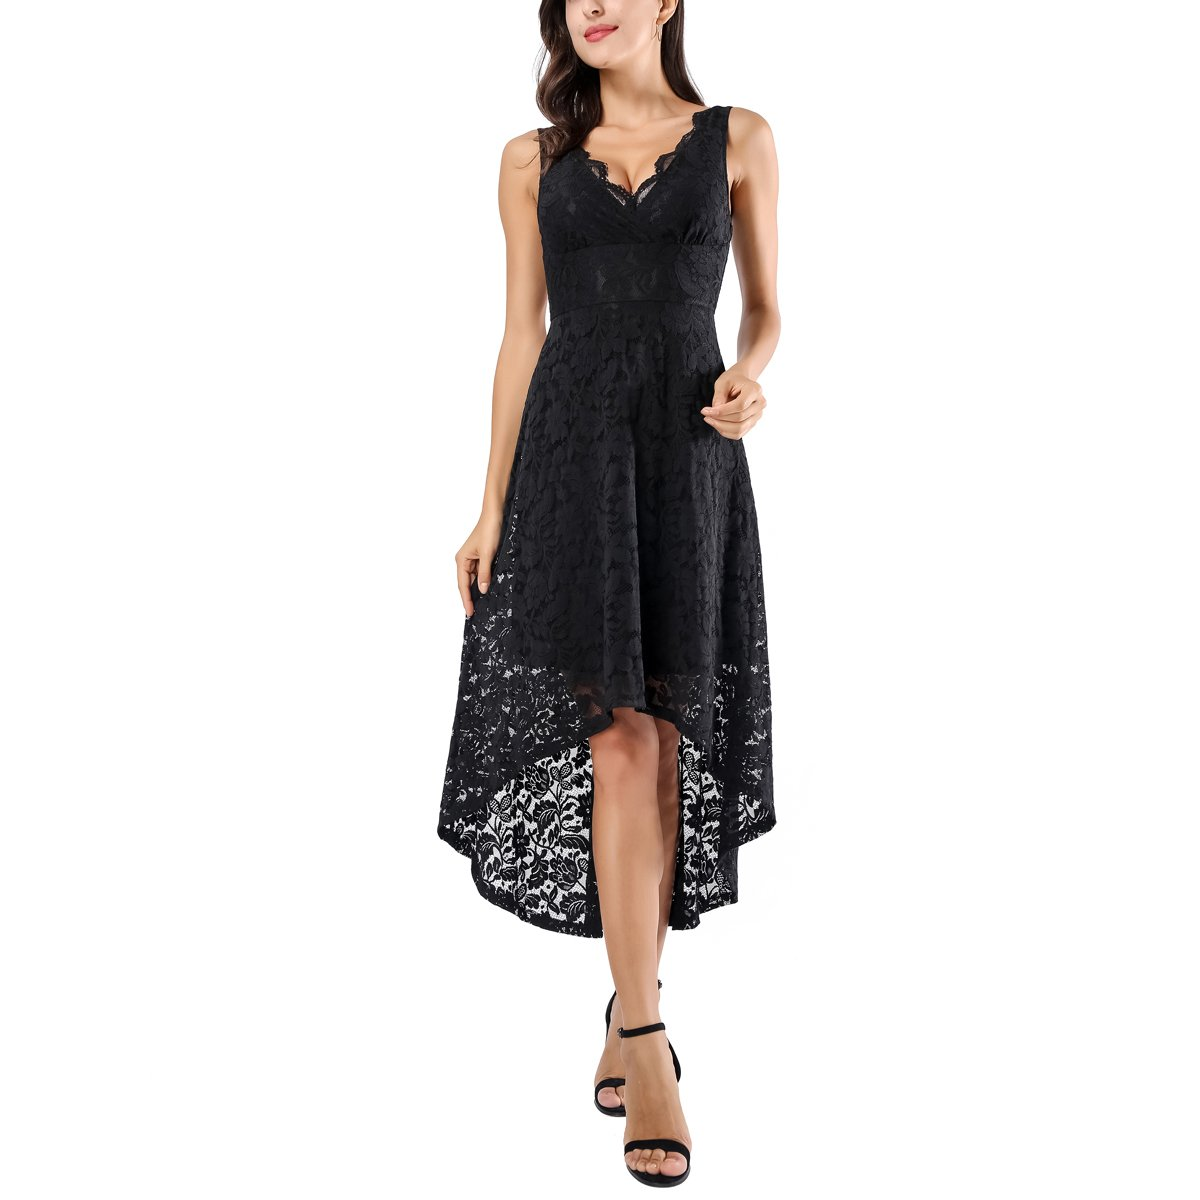 08d3c00c67 Top 10 wholesale Black And White Lace High Low Dress - Chinabrands.com